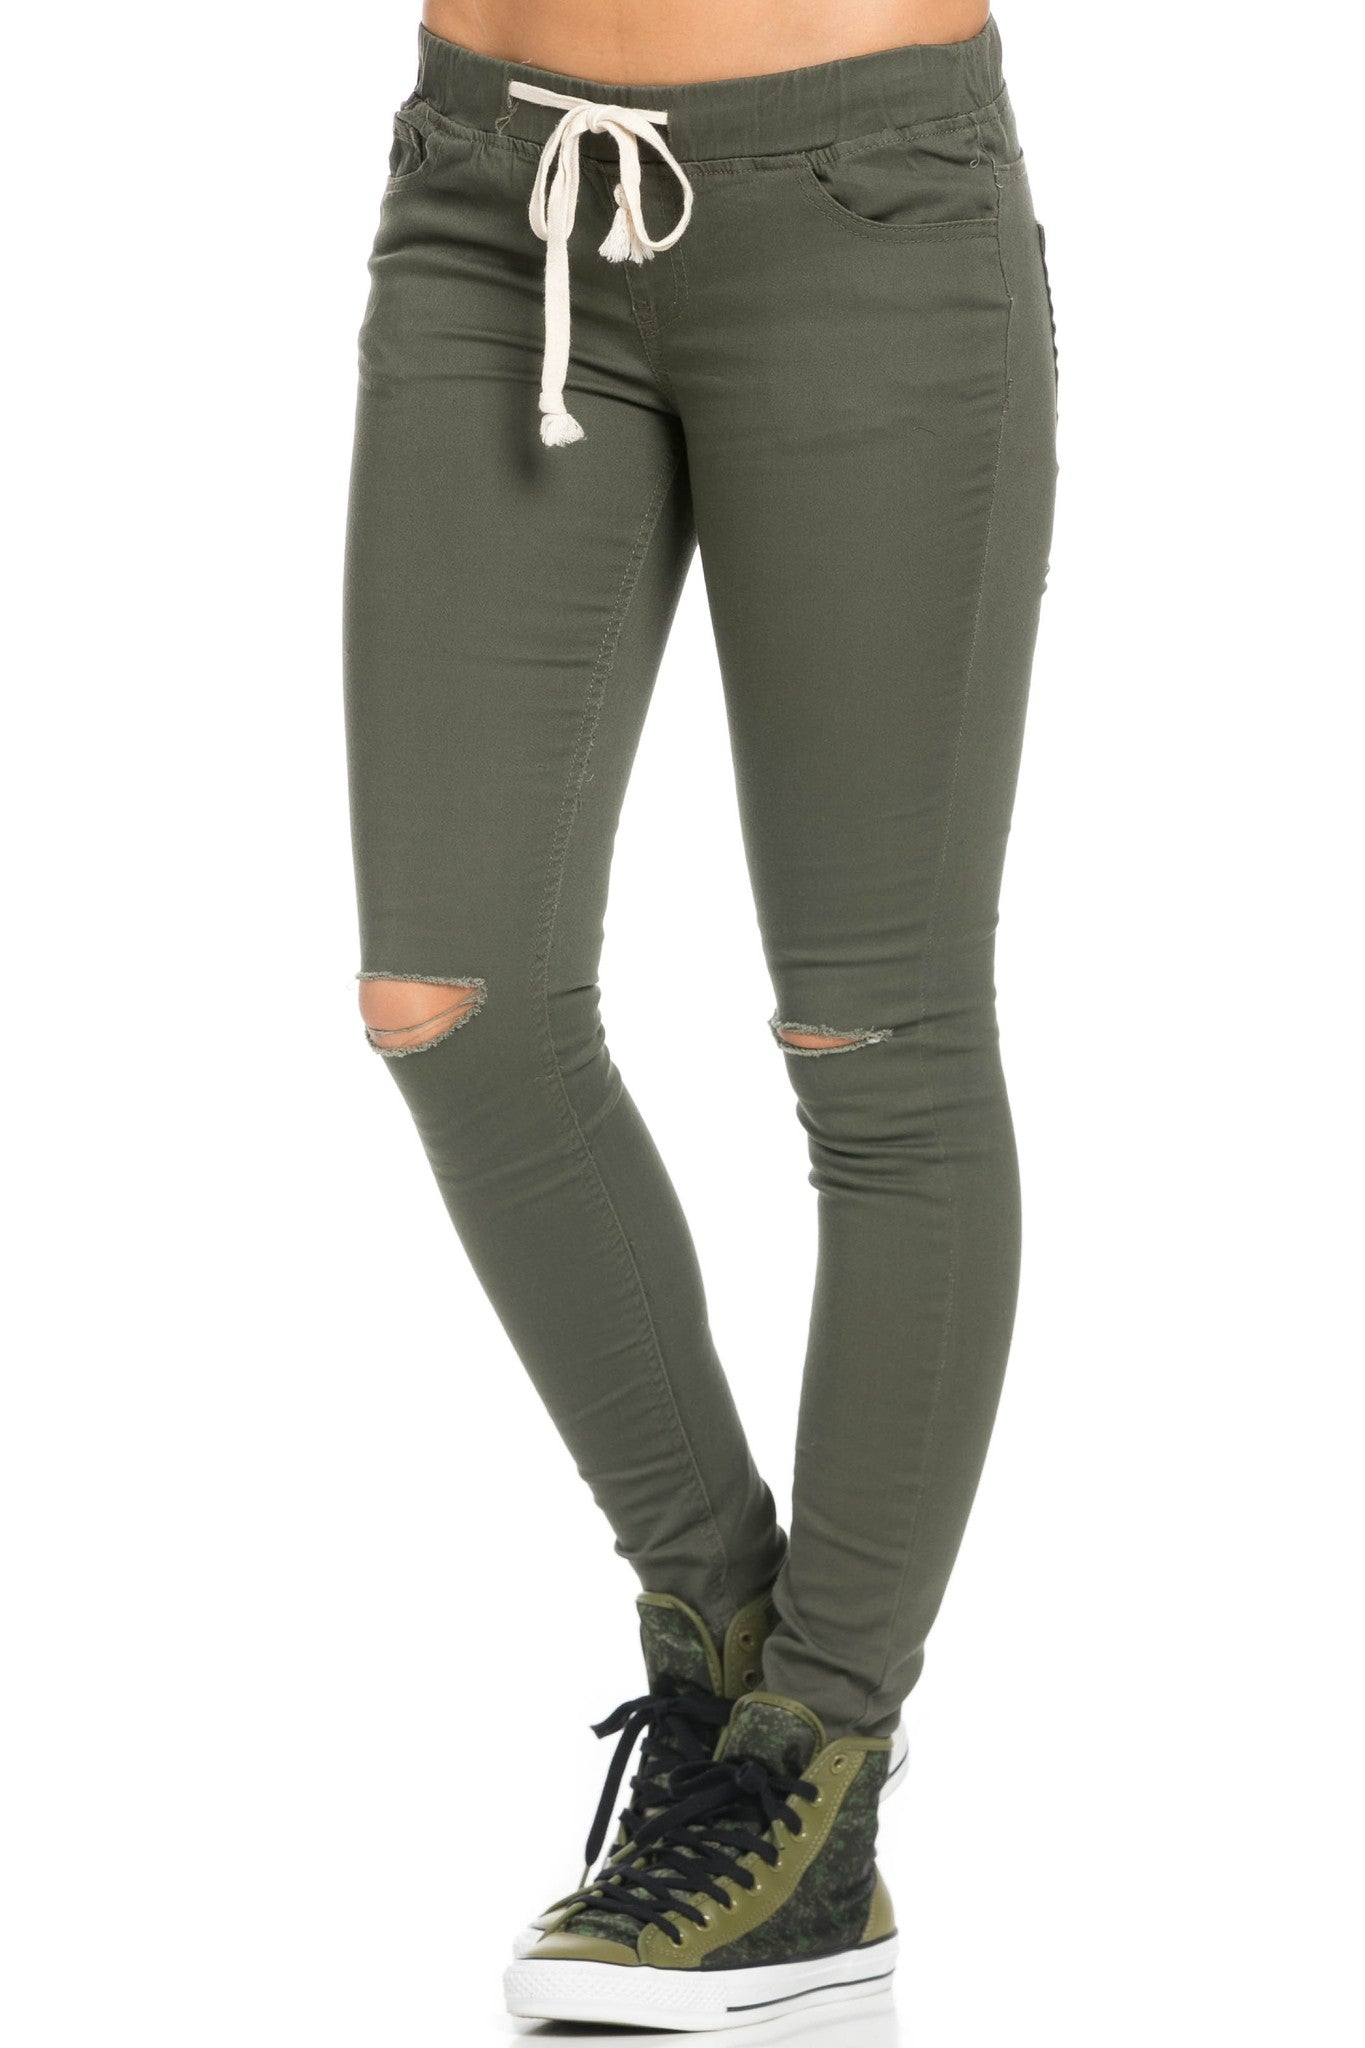 Destroyed Olive Skinny Jogger Jeans - Pants - My Yuccie - 2